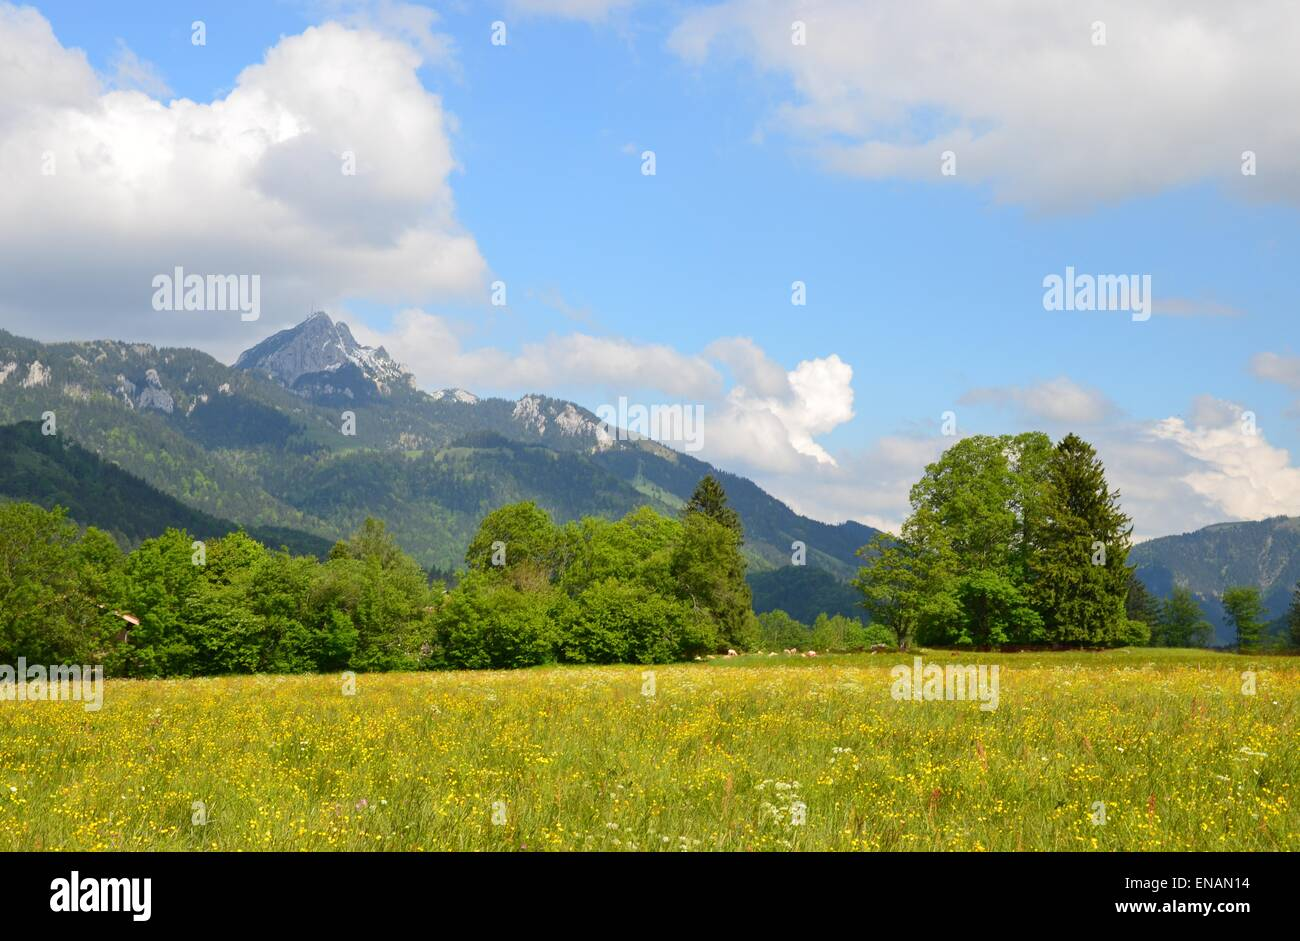 spring flowers in the meadows between Neuhaus and Bayrischzell at the foot of Wendelstein. - Stock Image